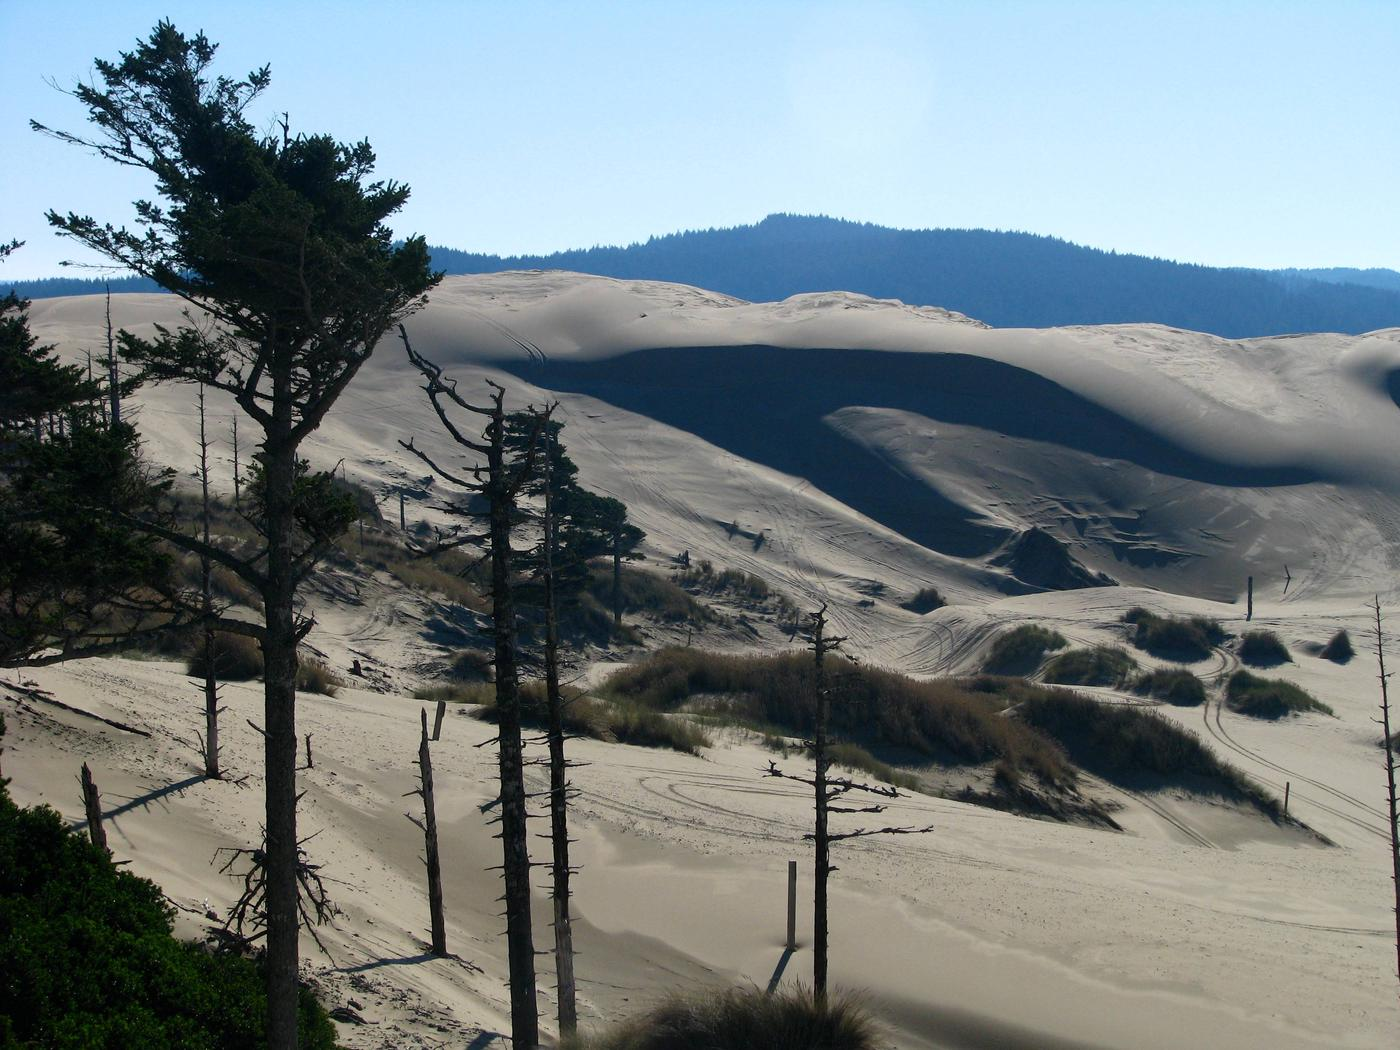 Shore pines in silhouette with large sand dune and blue hills in background.Oregon Dunes National Recreation Area